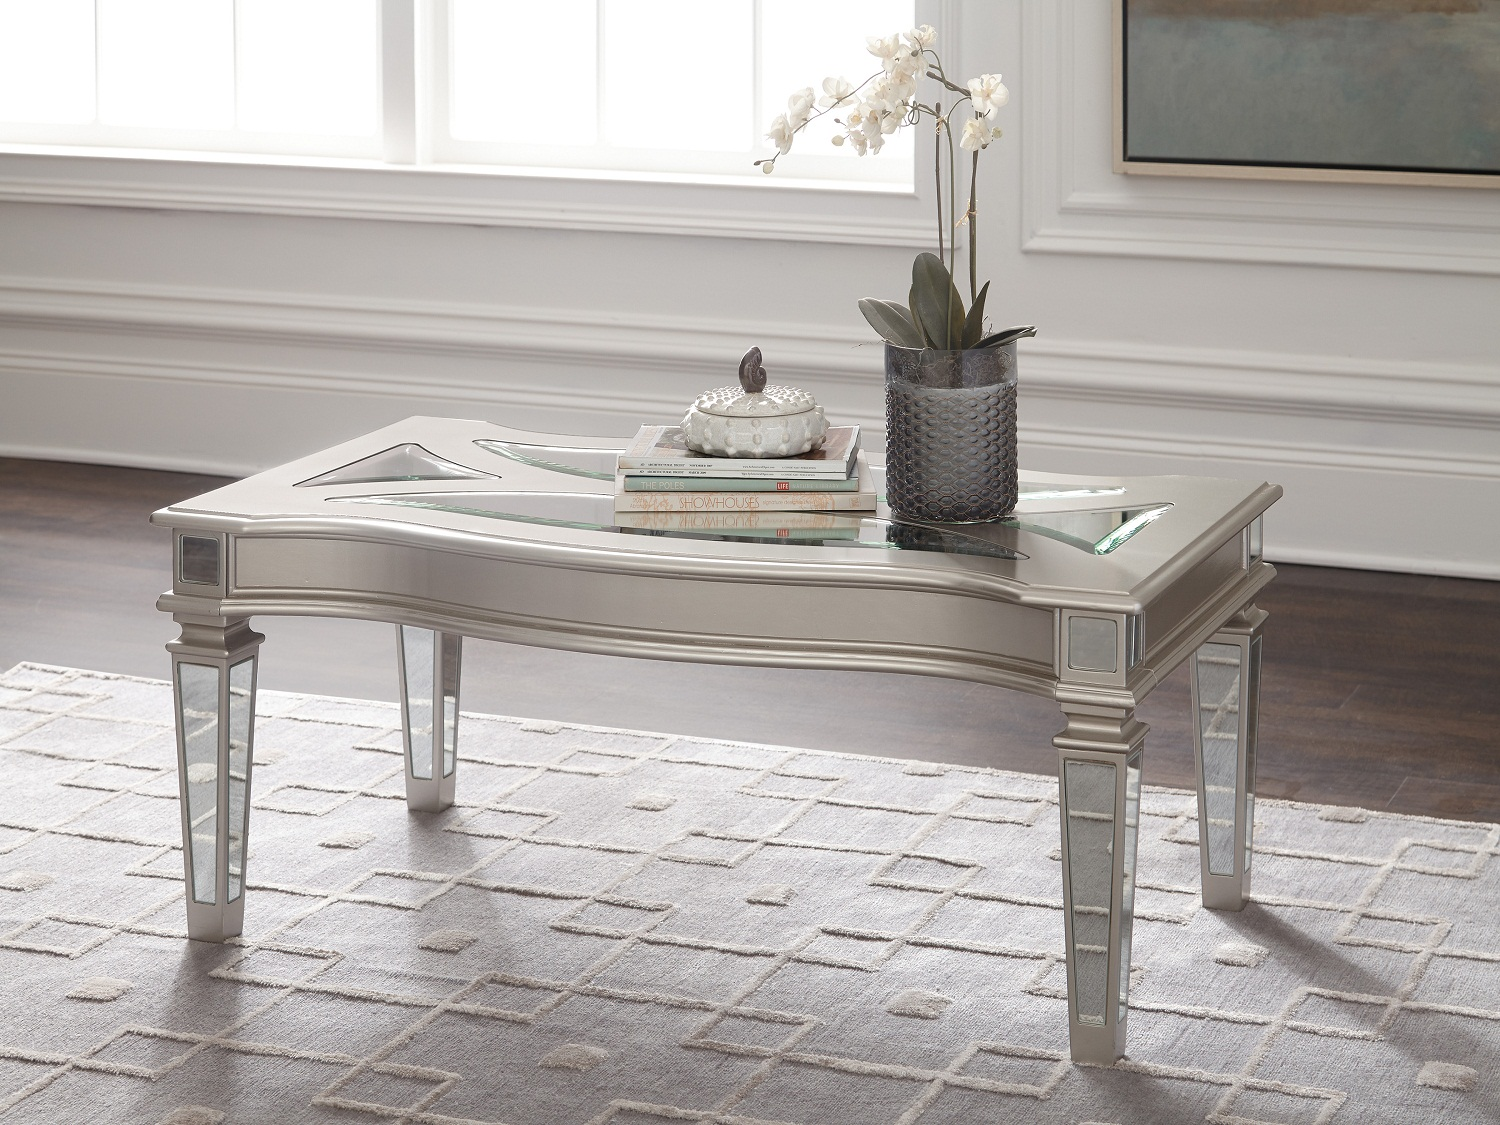 Tessani, T099, Coffee Table by Midha Furniture to Brampton, Mississauga, Etobicoke, Toronto, Scraborough, Caledon, Oakville, Markham, Ajax, Pickering, Oshawa, Richmondhill, Kitchener, Hamilton and GTA area